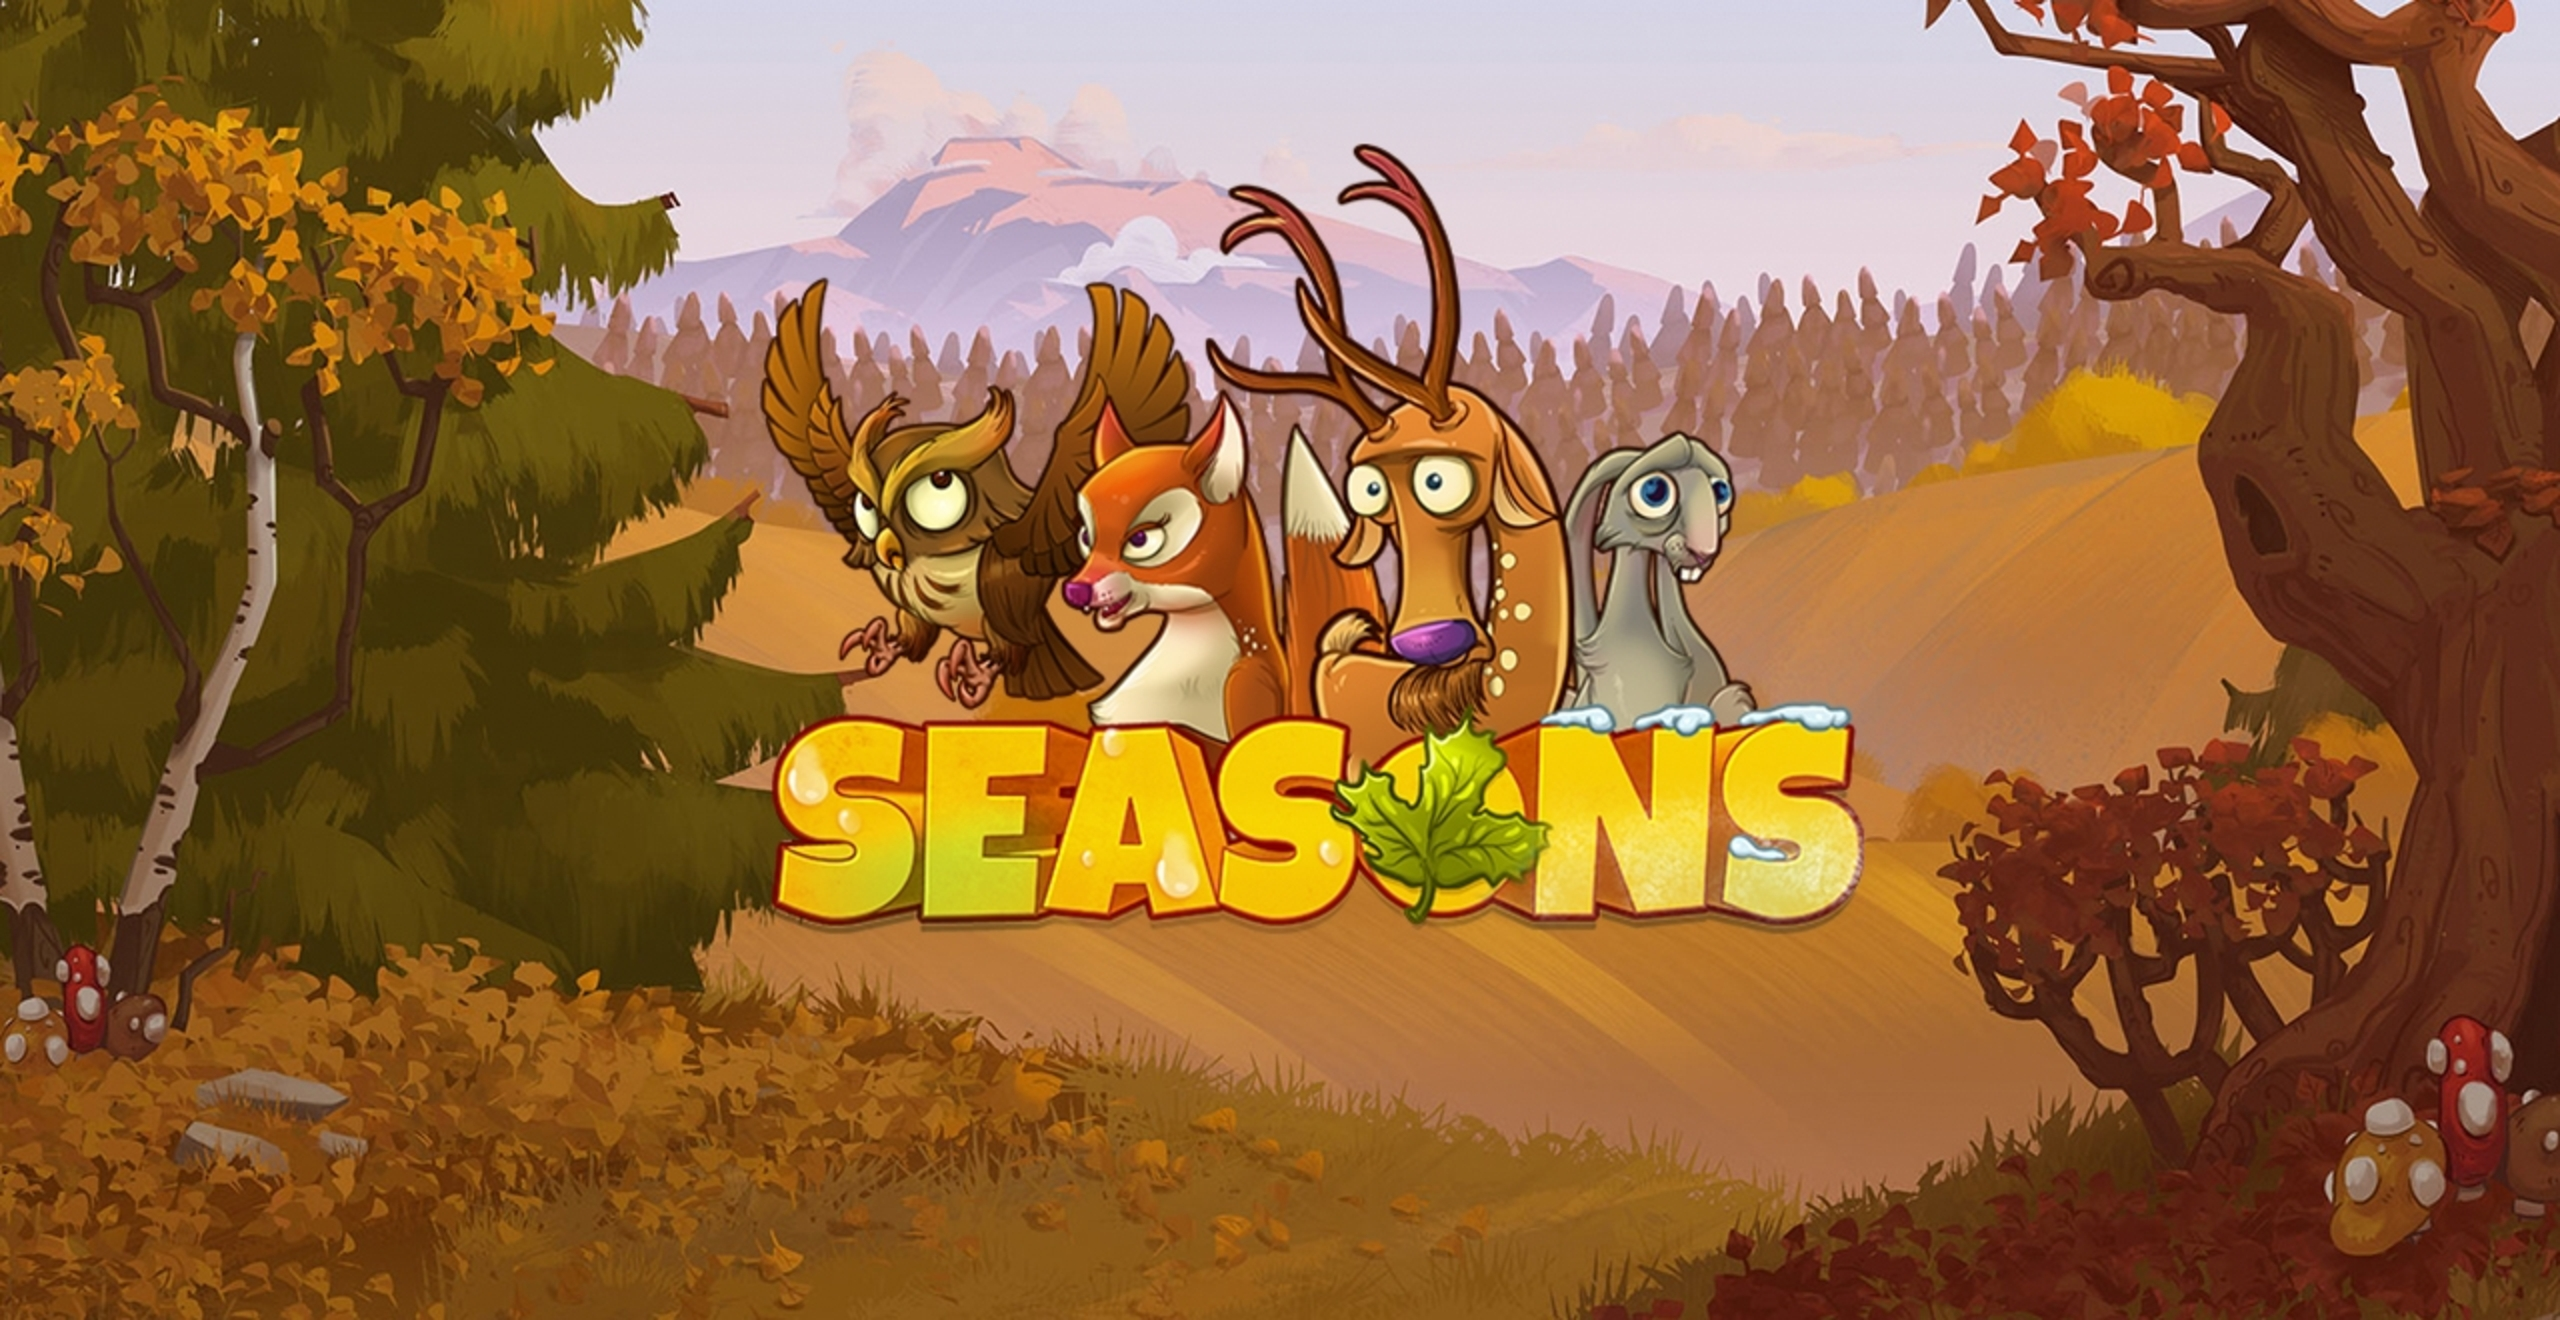 Se Seasons Online Slot Demo Game, Yggdrasil